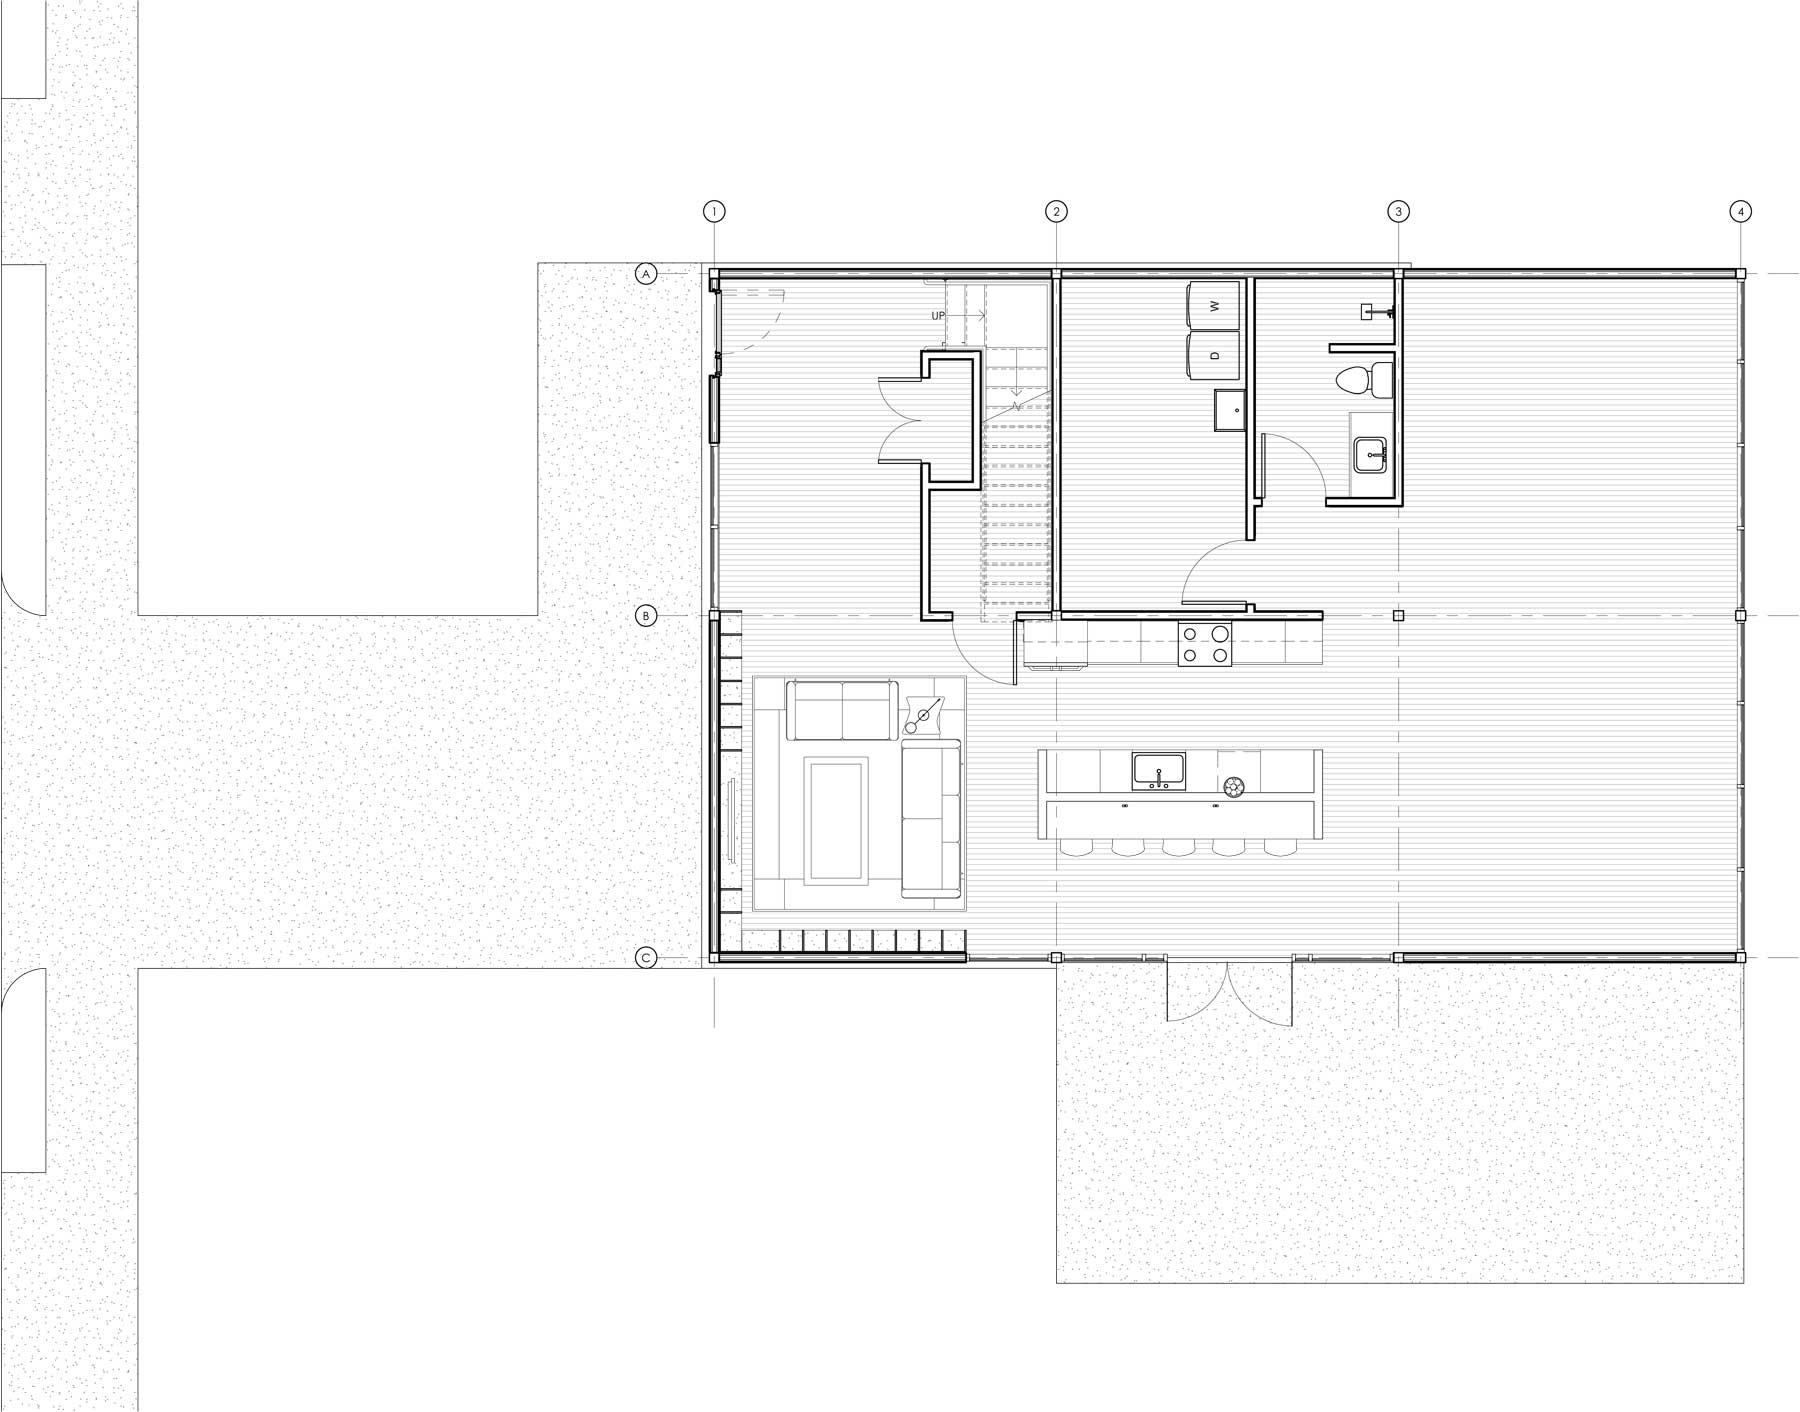 28x30-Ground-Floor-Plan-Large-Module.jpg